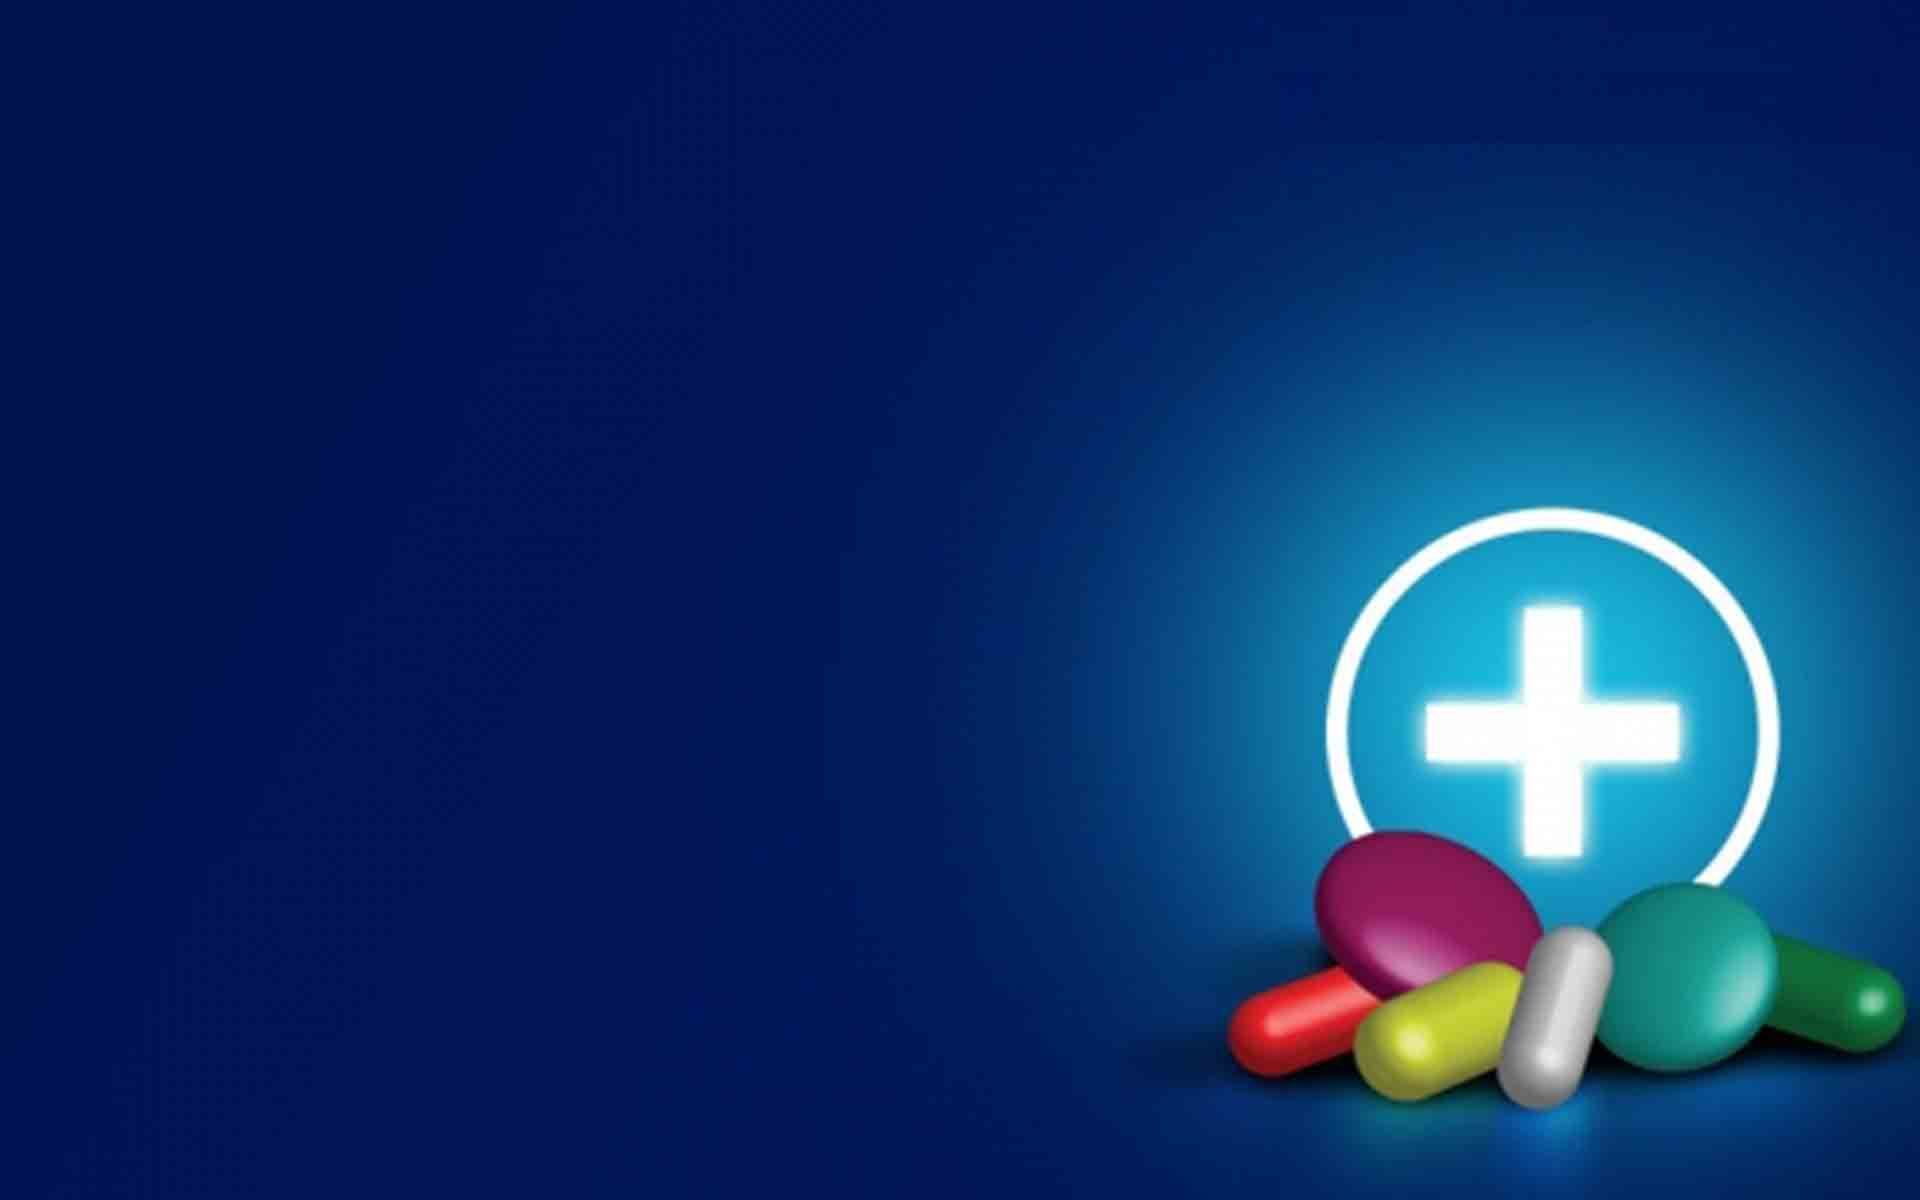 Health Wallpapers   Top Health Backgrounds   WallpaperAccess 1920x1200